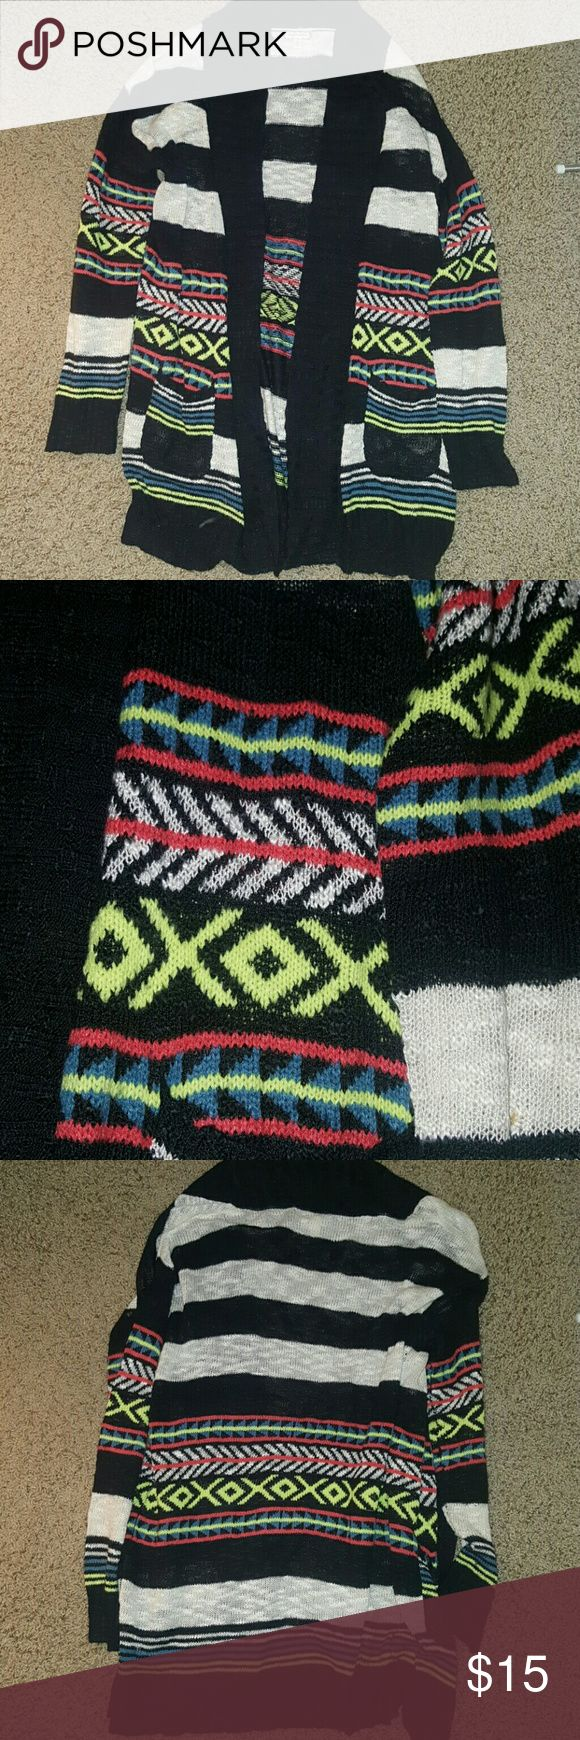 Tribal print cardigan This cardigan has a fun neon green, pink, blue, cream and black tribal print with stripes combo. It is also long and flowy. Super cute for any season! Sweaters Cardigans